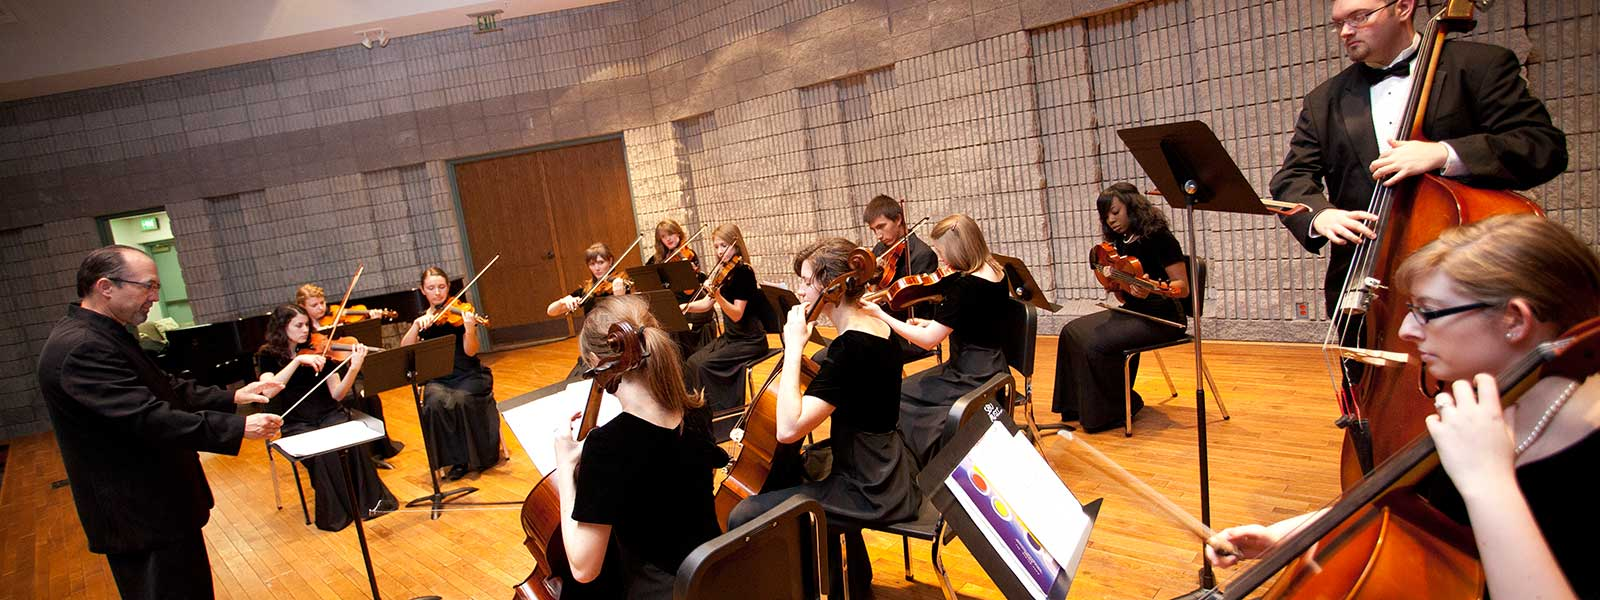 strings ensemble performance